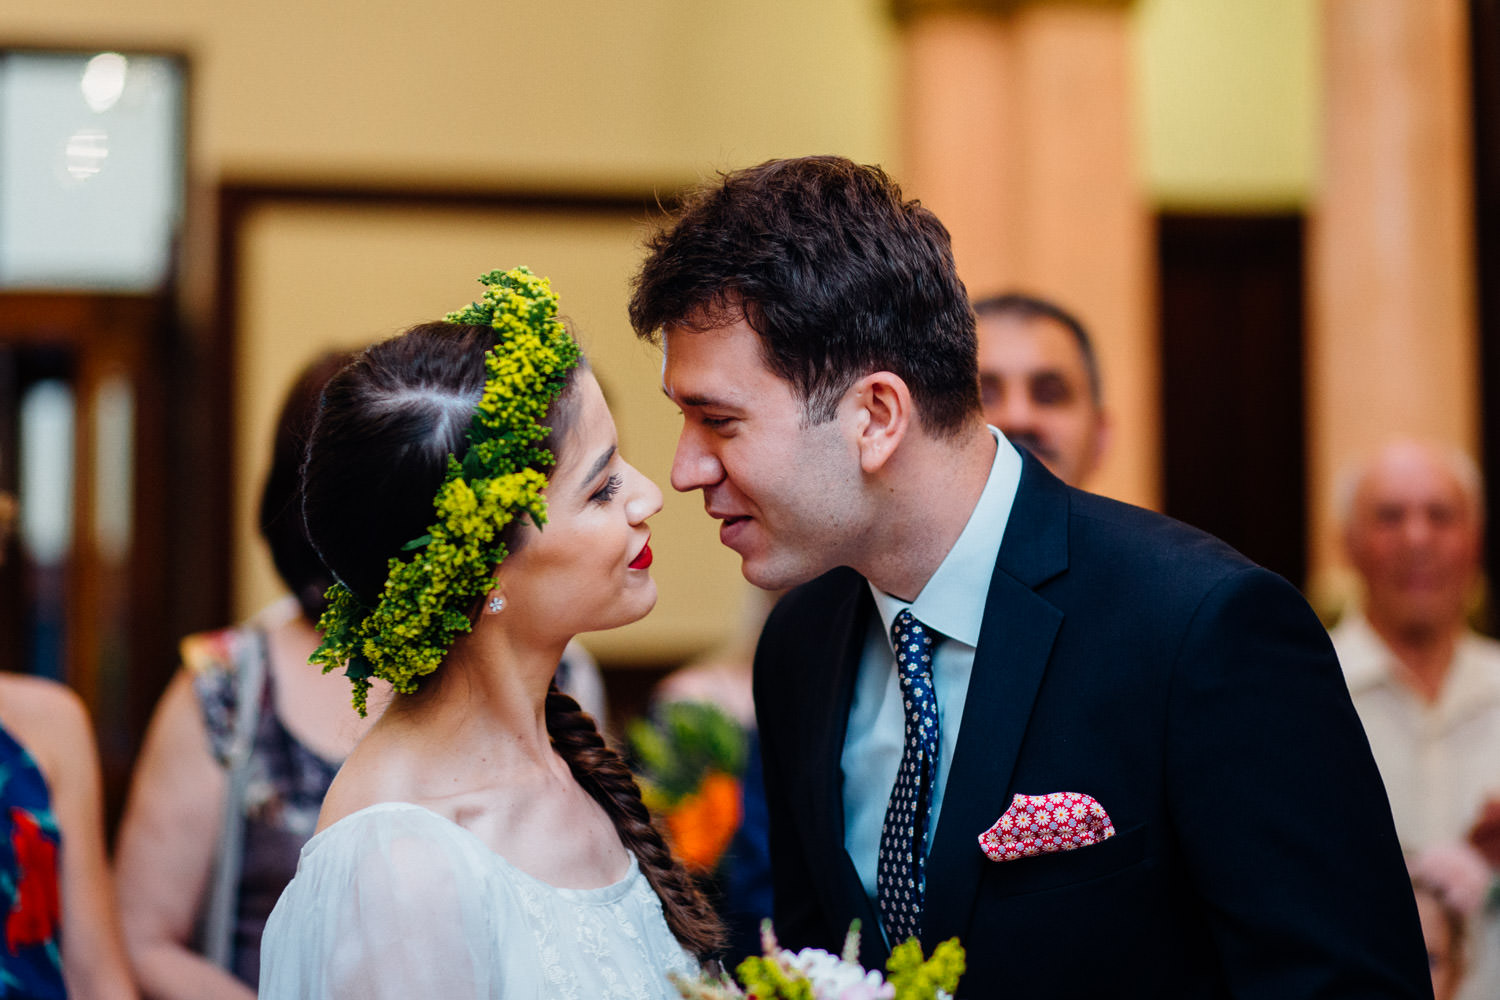 Bogdan & Luiza civil wedding Pitesti-1016